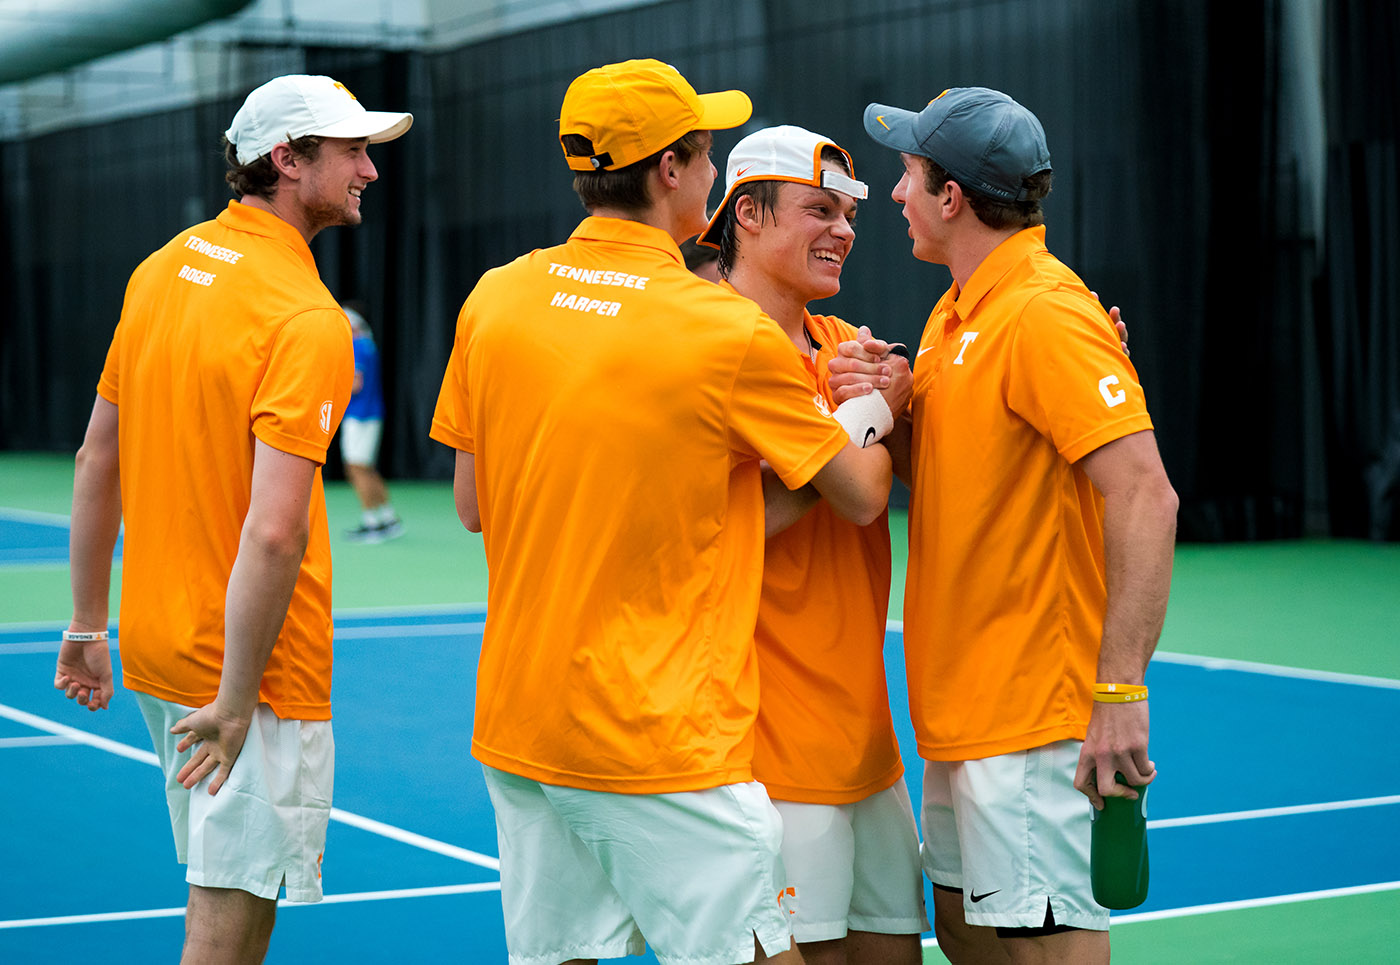 Tennessee Blanks Duke on MatchDay